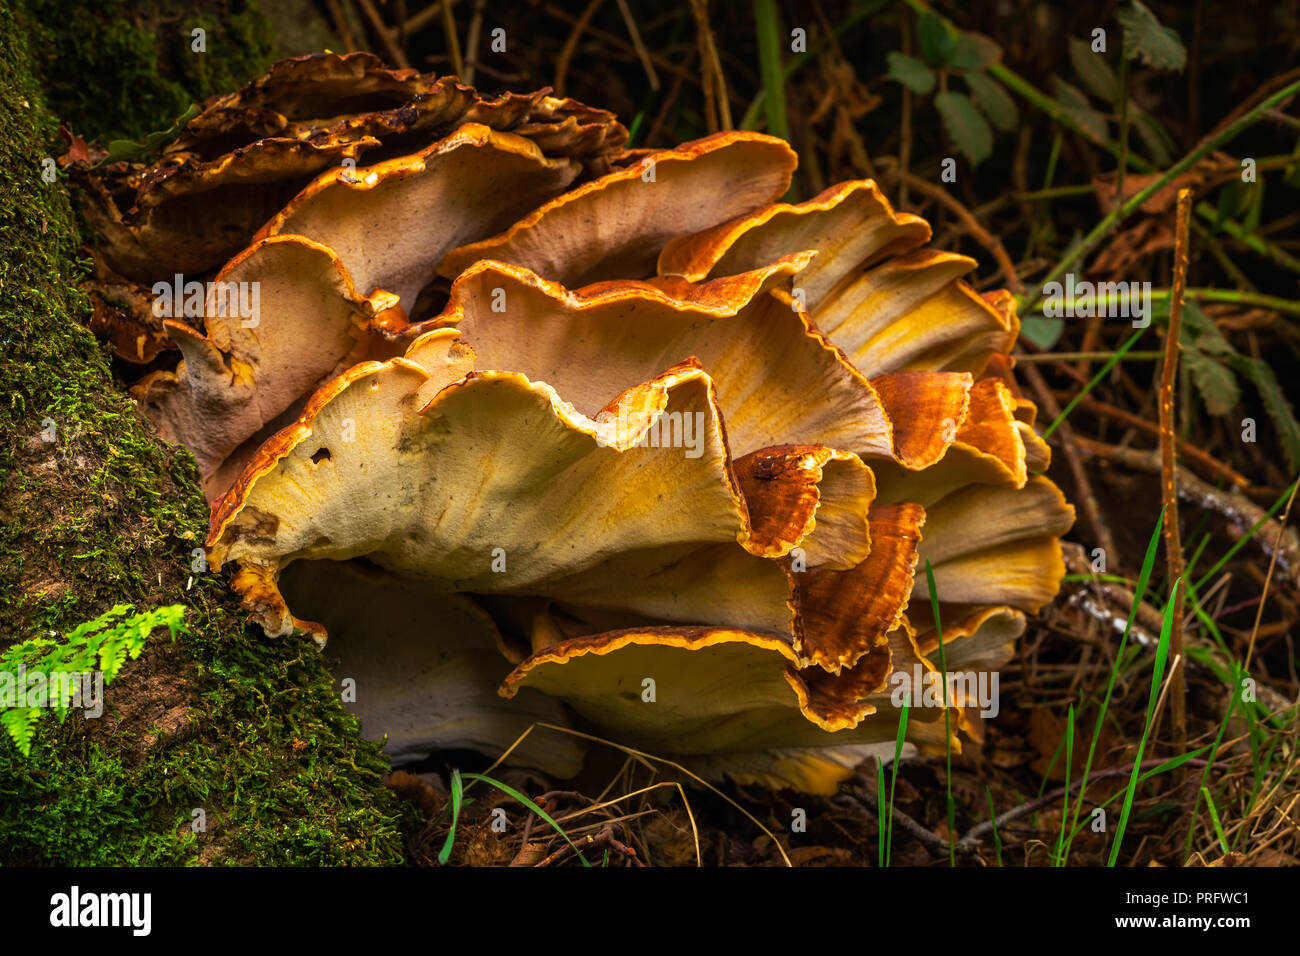 sulphur shelf, chicken of the woods, the chicken mushroom, or the chicken fungus - Stock Image